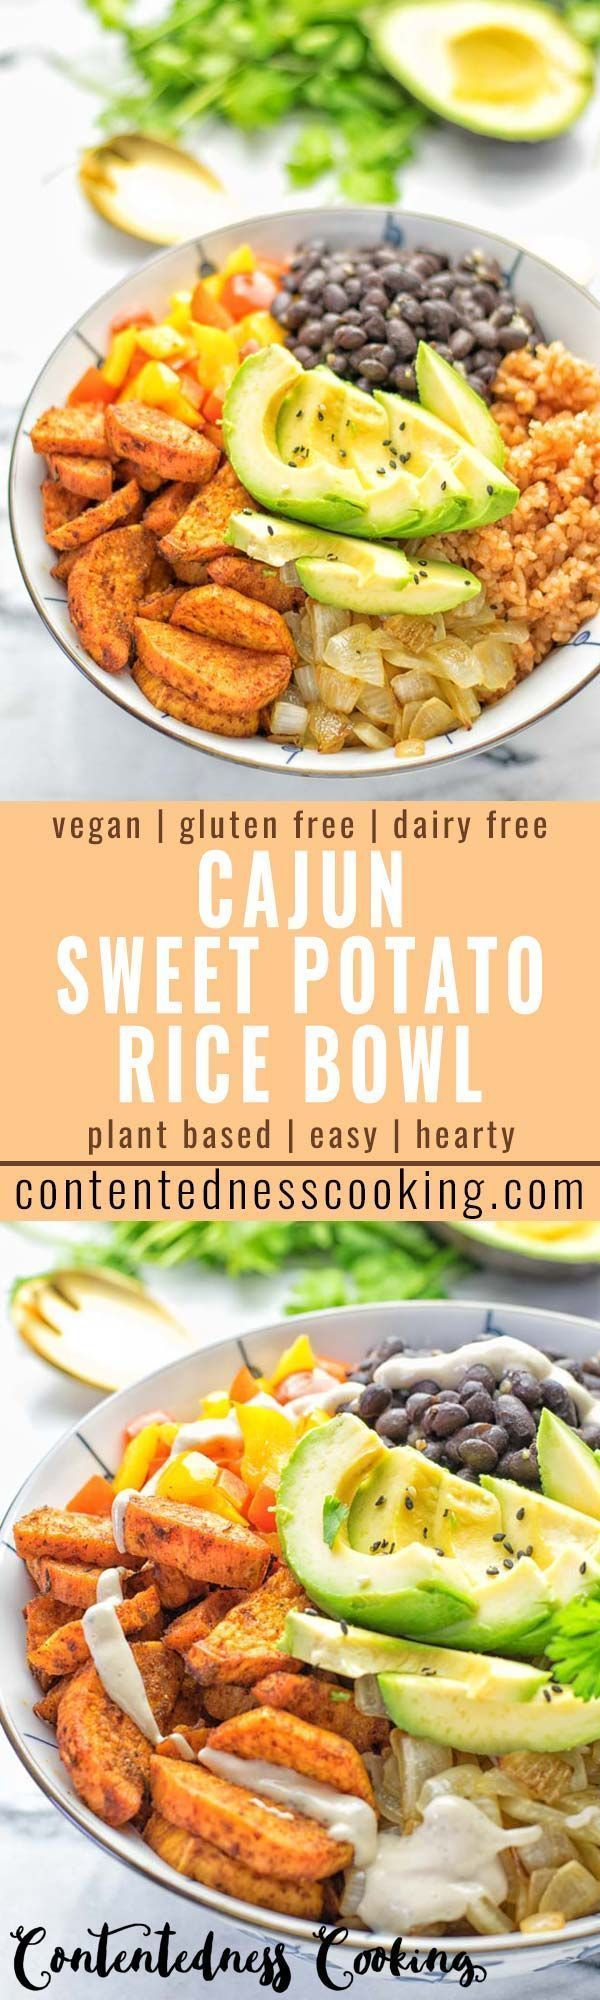 Cajun Sweet Potato Rice Bowl- Cajun Sweet Potato Rice Bowl Super easy to make and incredibly satisfying: This Cajun Sweet Potato Rice bowl is naturally vegan, gluten free and infused with all the best cajun flavors. An amazing dinner, lunch, meal prep, work lunch and budget friendly meal which the whole family will love. Sweet Potato Rice Bowl- Cajun Sweet Potato Rice Bowl  Super easy to make and incredibly satisfying: This Cajun Sweet Potato Rice bowl is naturally vegan, gluten free and infused with all the best cajun flavors. An amazing dinner, lunch, meal prep, work lunch and budget friendly meal which the whole...